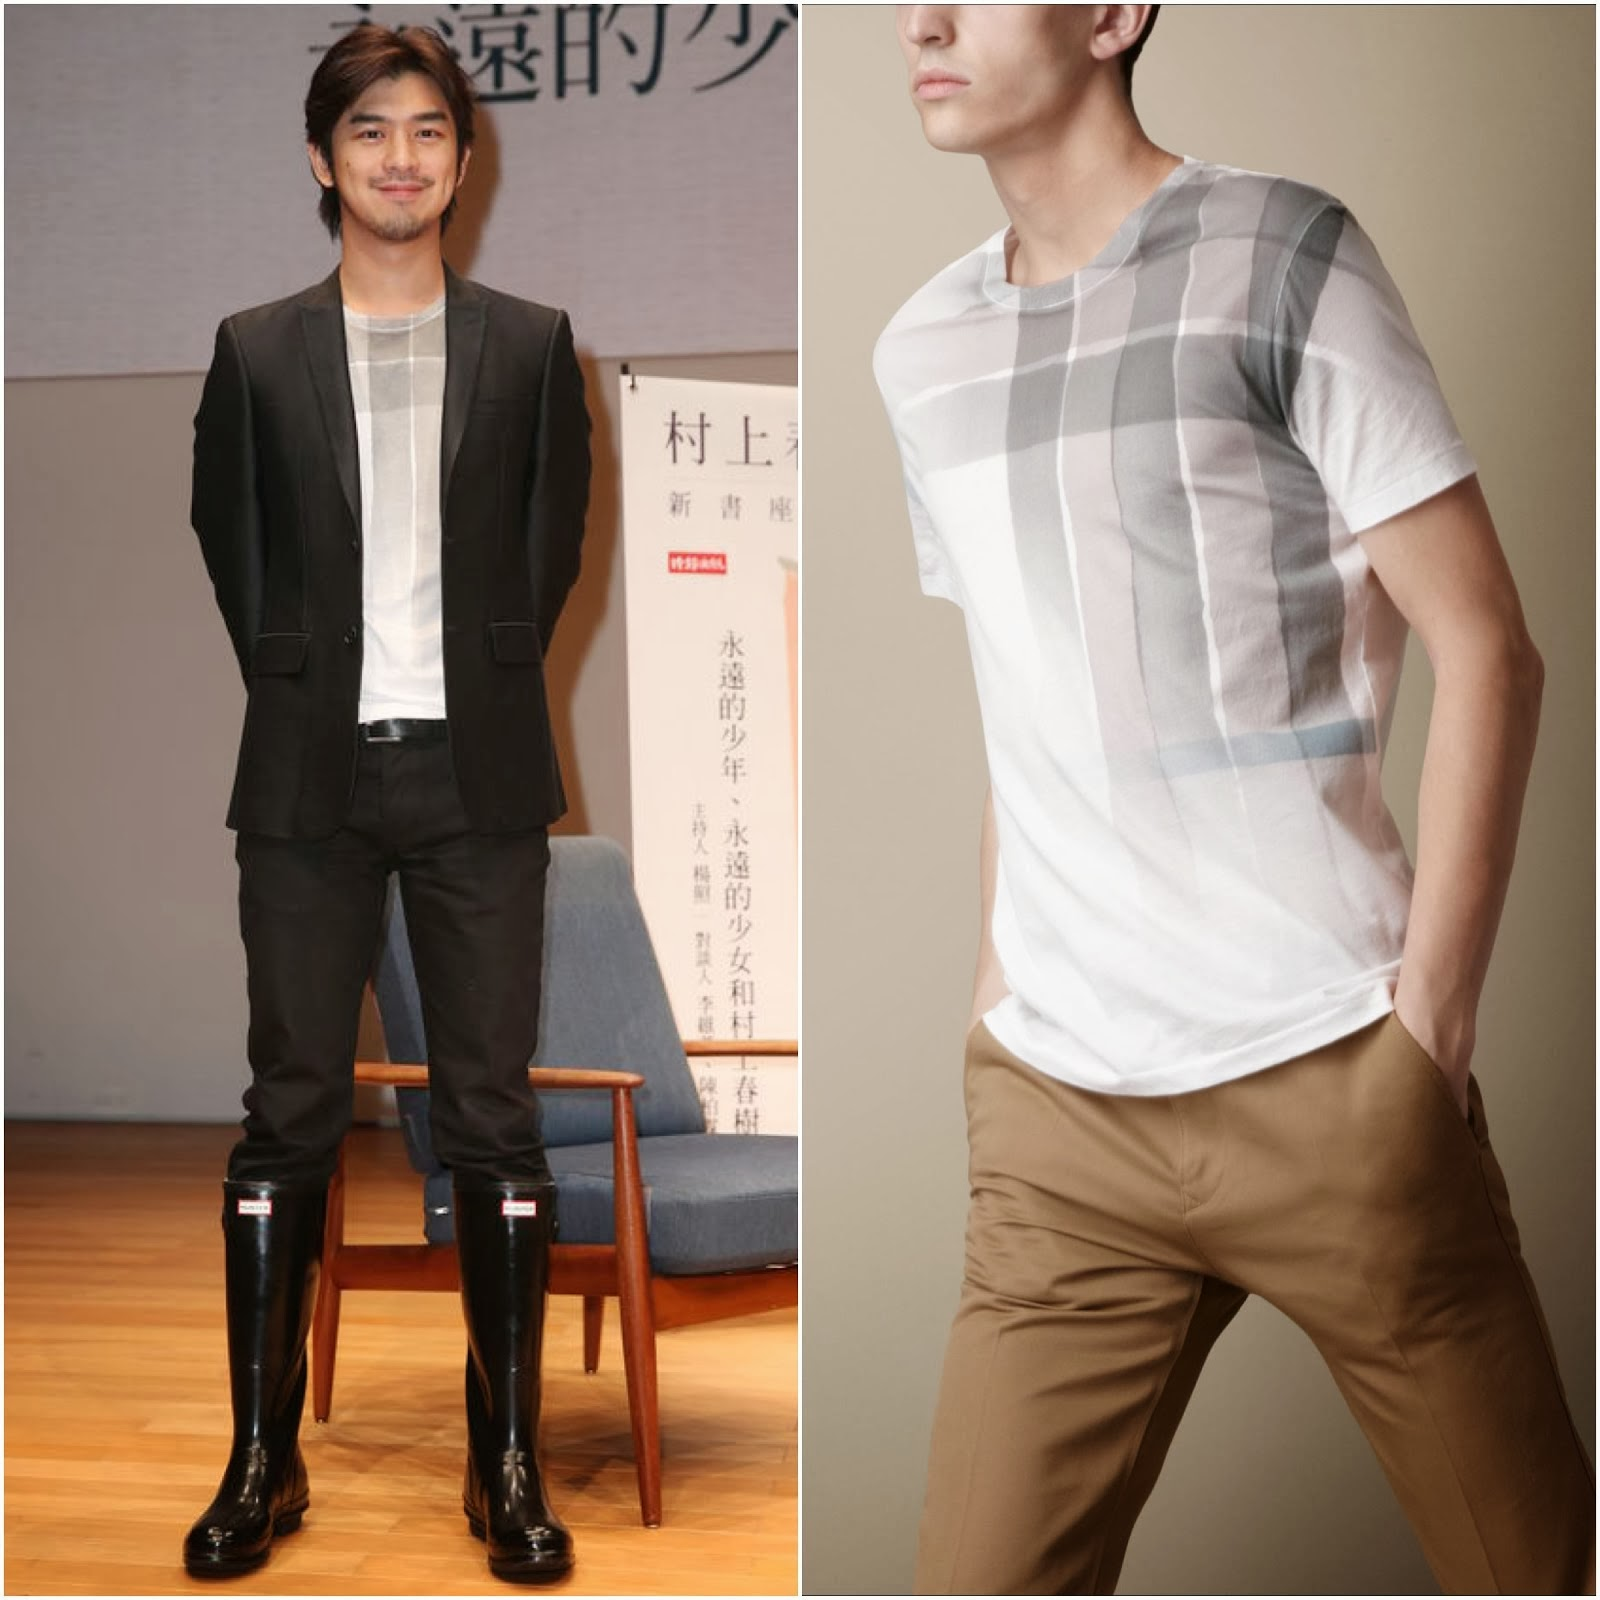 00O00 Menswear Blog: Wilson Chen Bolin in Burberry - Haruki Murakami Book Launch 陈柏霖出席村上春树新书座谈会